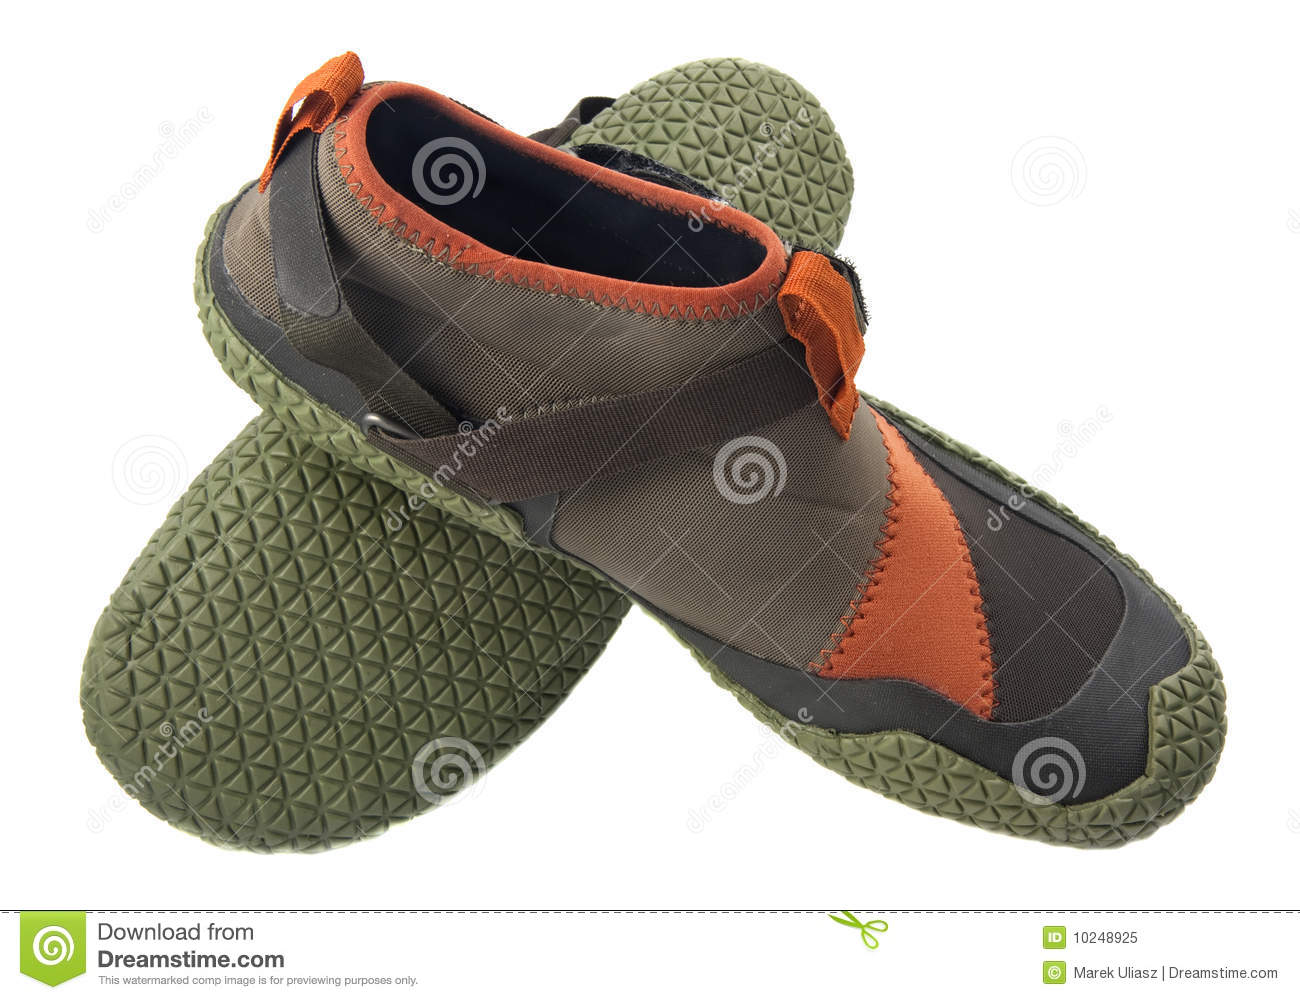 Water Shoes Clipart - Clipart Kid